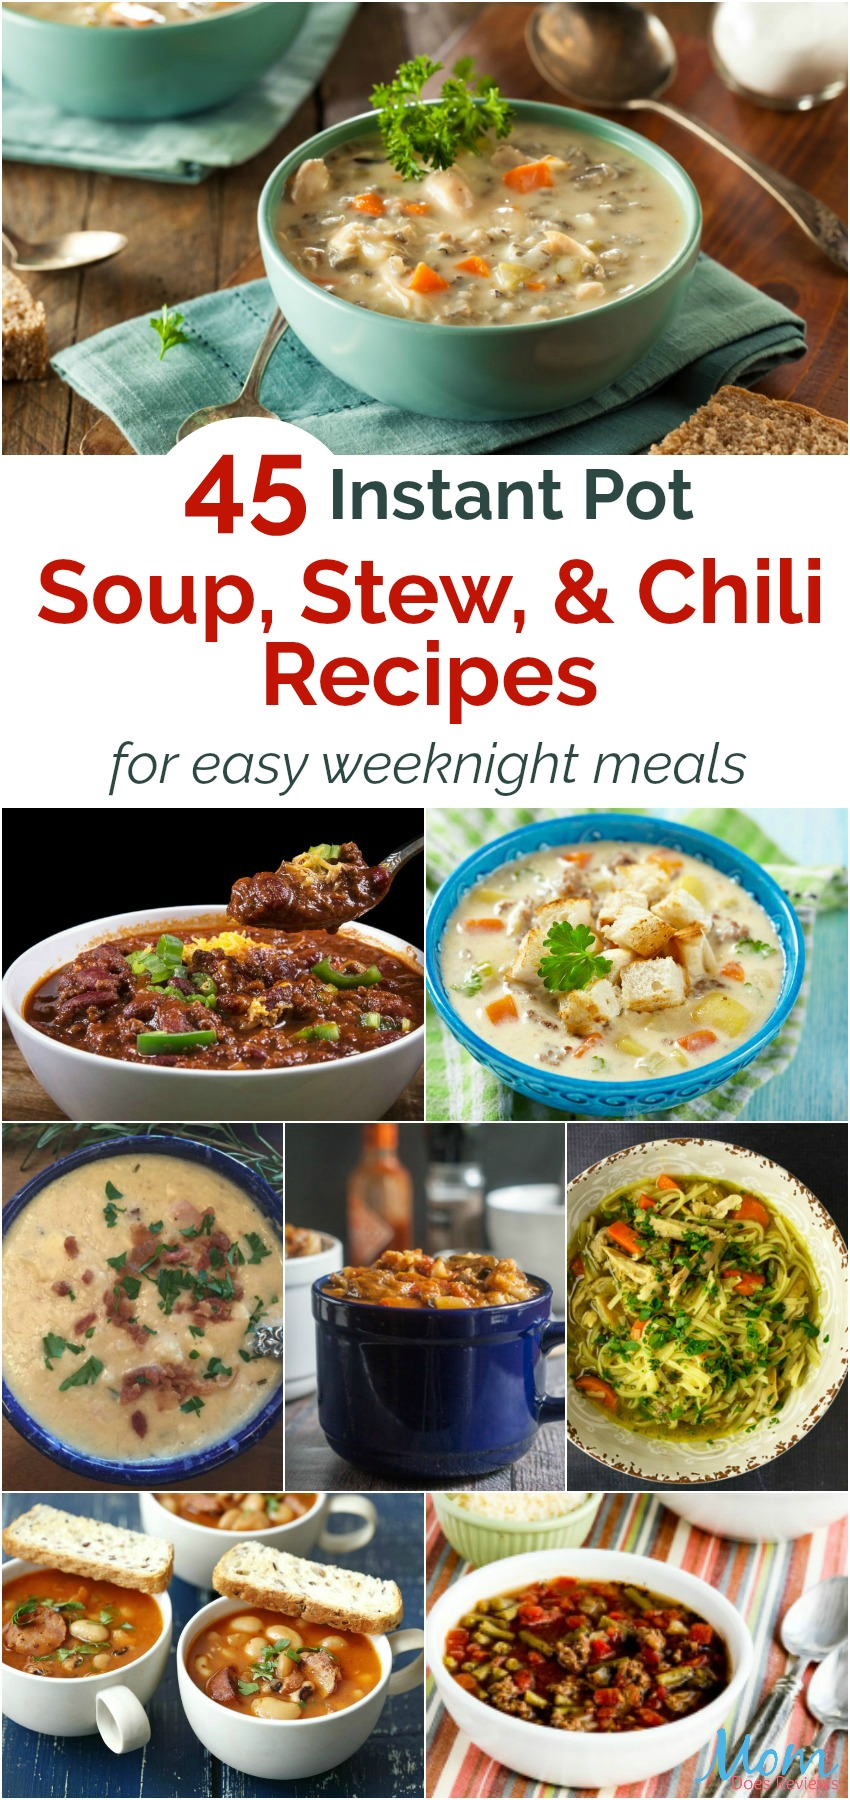 45 Instant Pot Soup, Stew, and Chili Recipes vertical banner